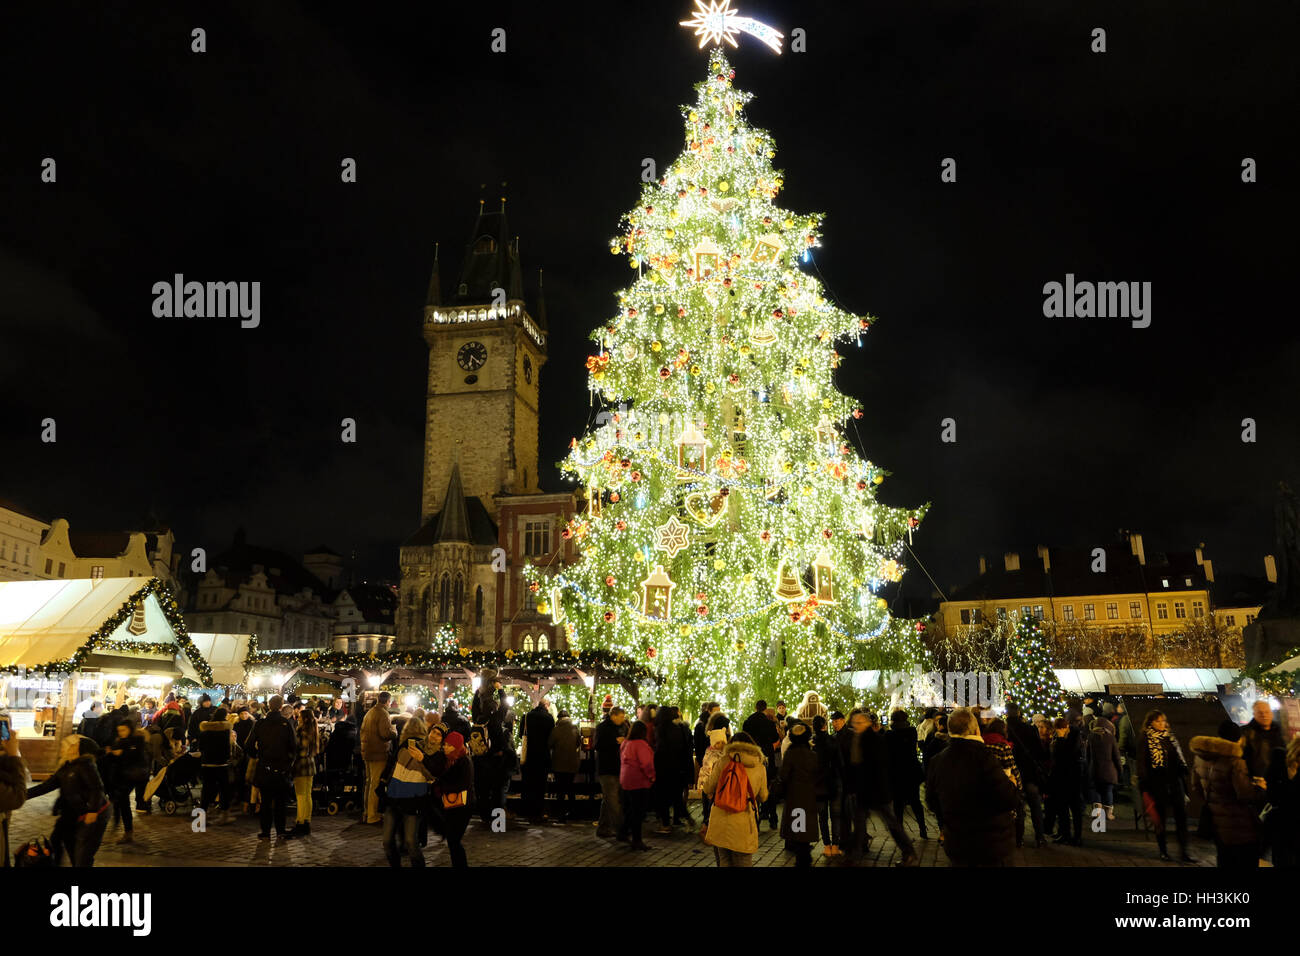 The old Town Square in Prague with Christmas tree and the clock tower in the background. - Stock Image